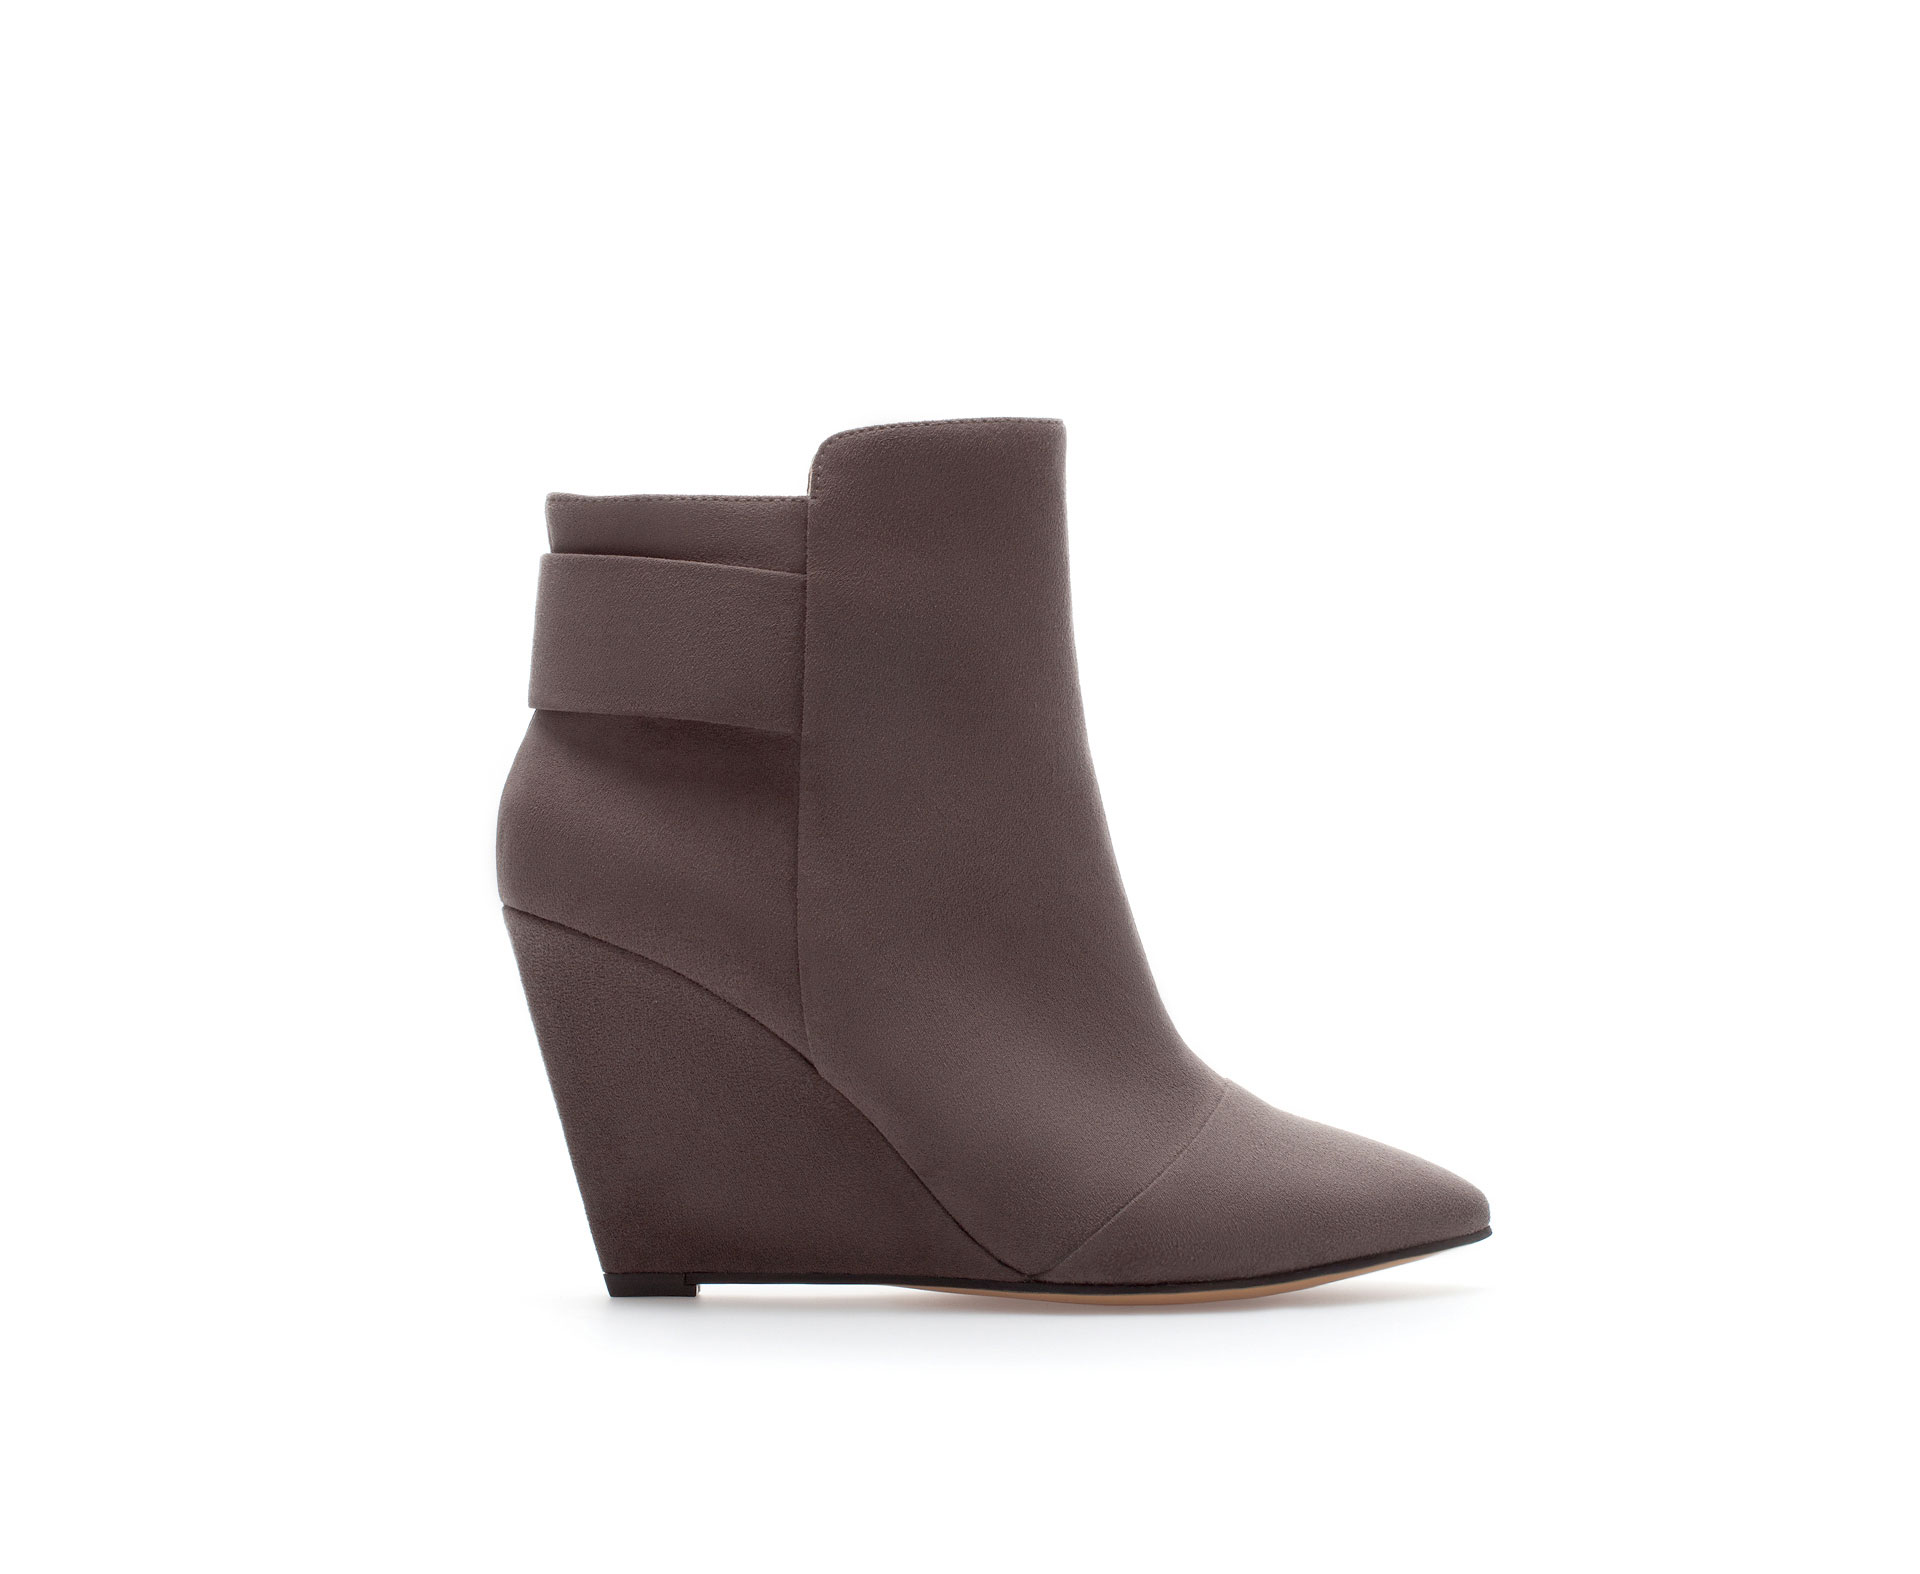 Zara Wedge Ankle Boot in Gray | Lyst